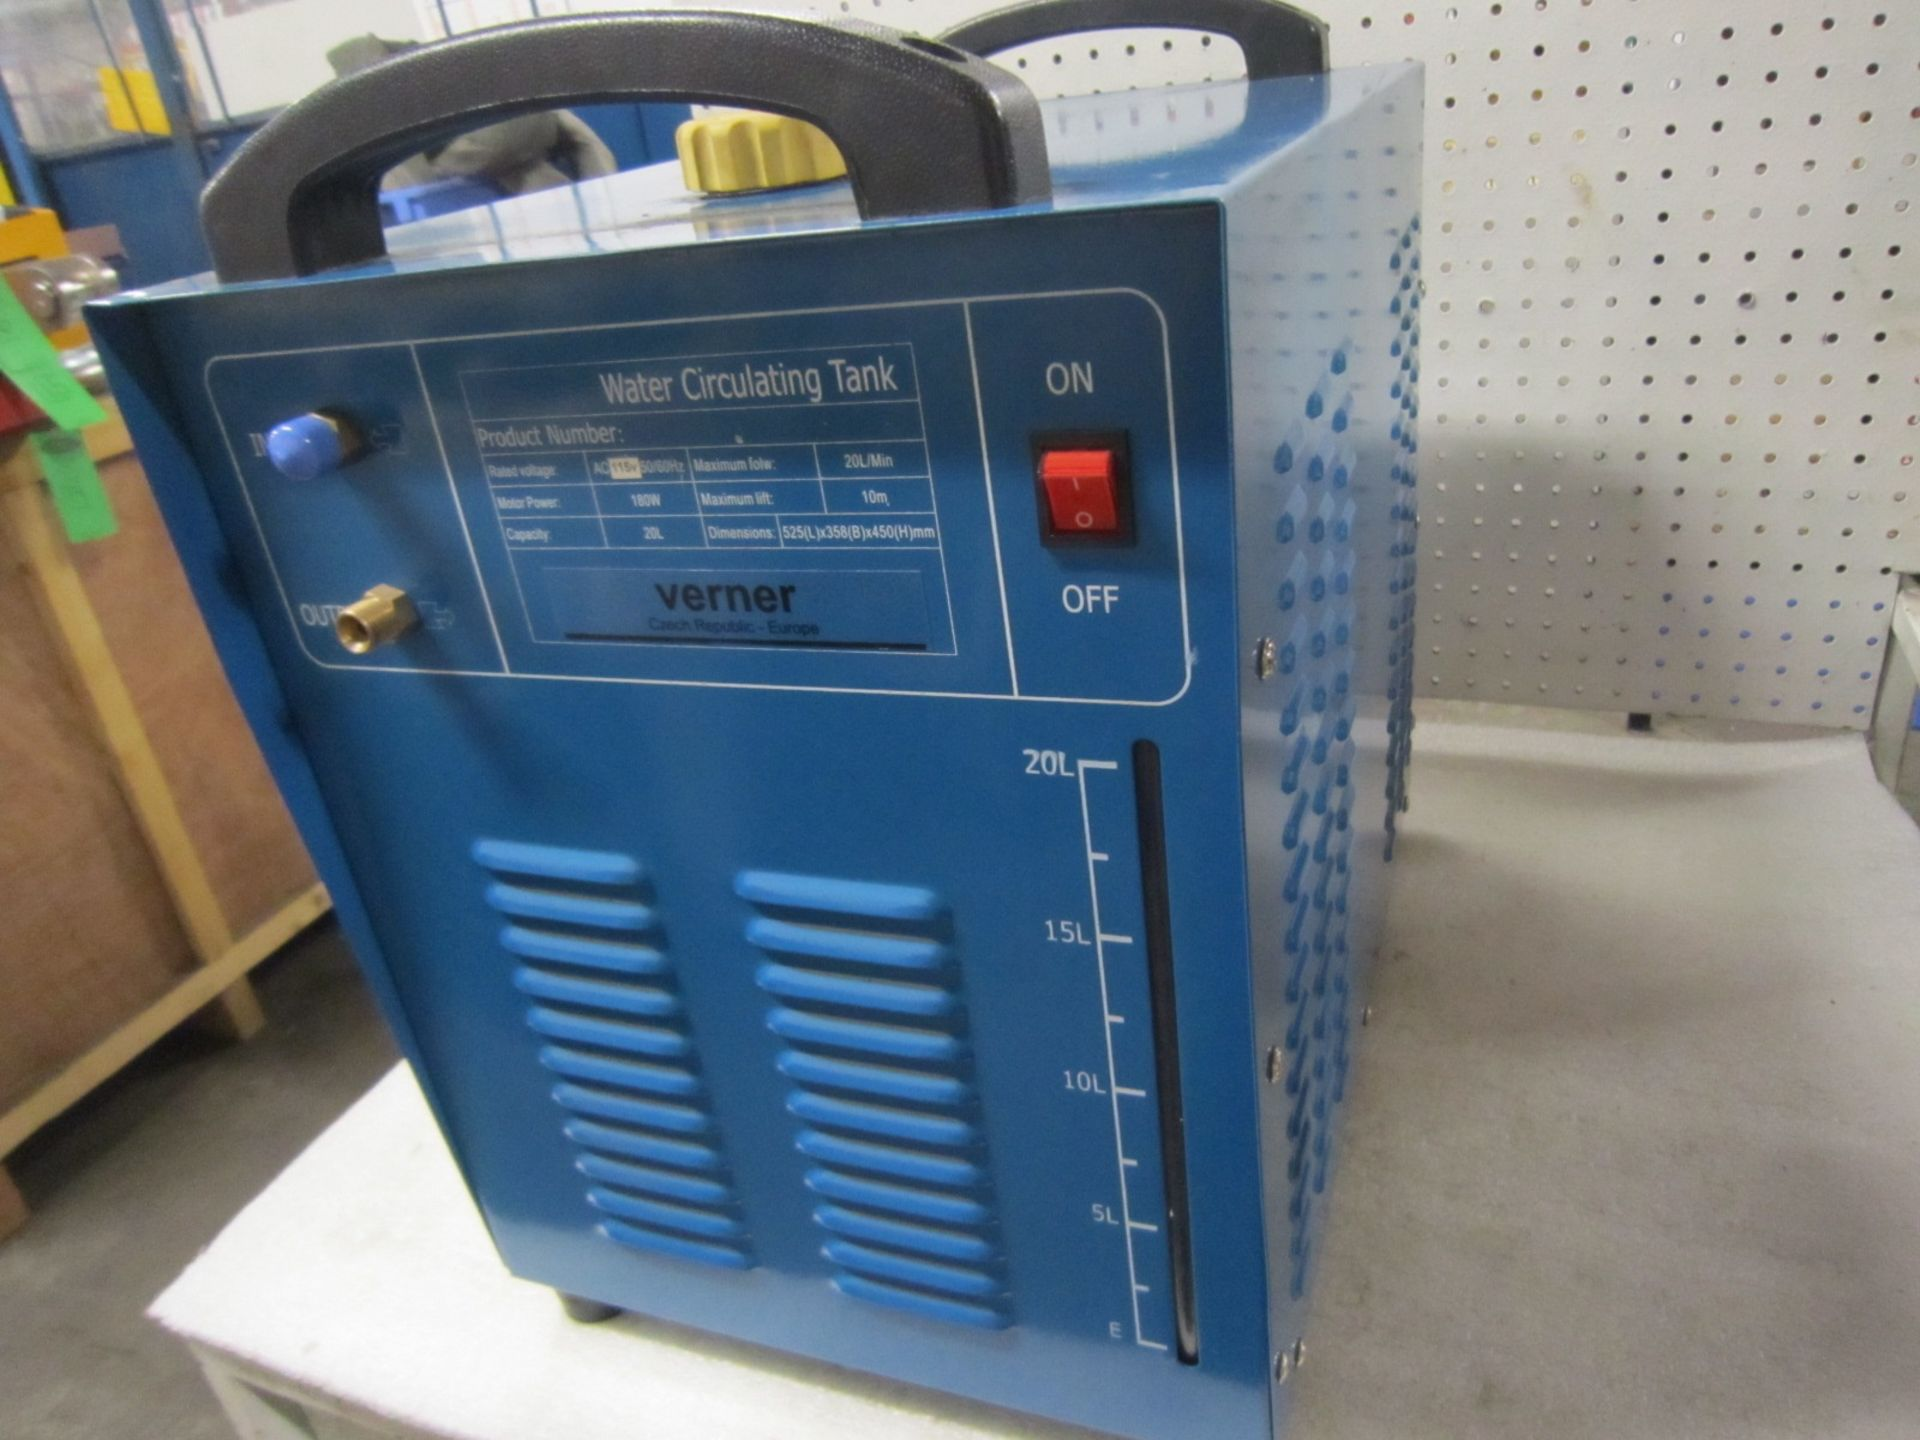 Lot 59 - Verner Water Circulating Tig Welding Water Cooler - 20 Litre Capacity Brand new - 115V Single Phase